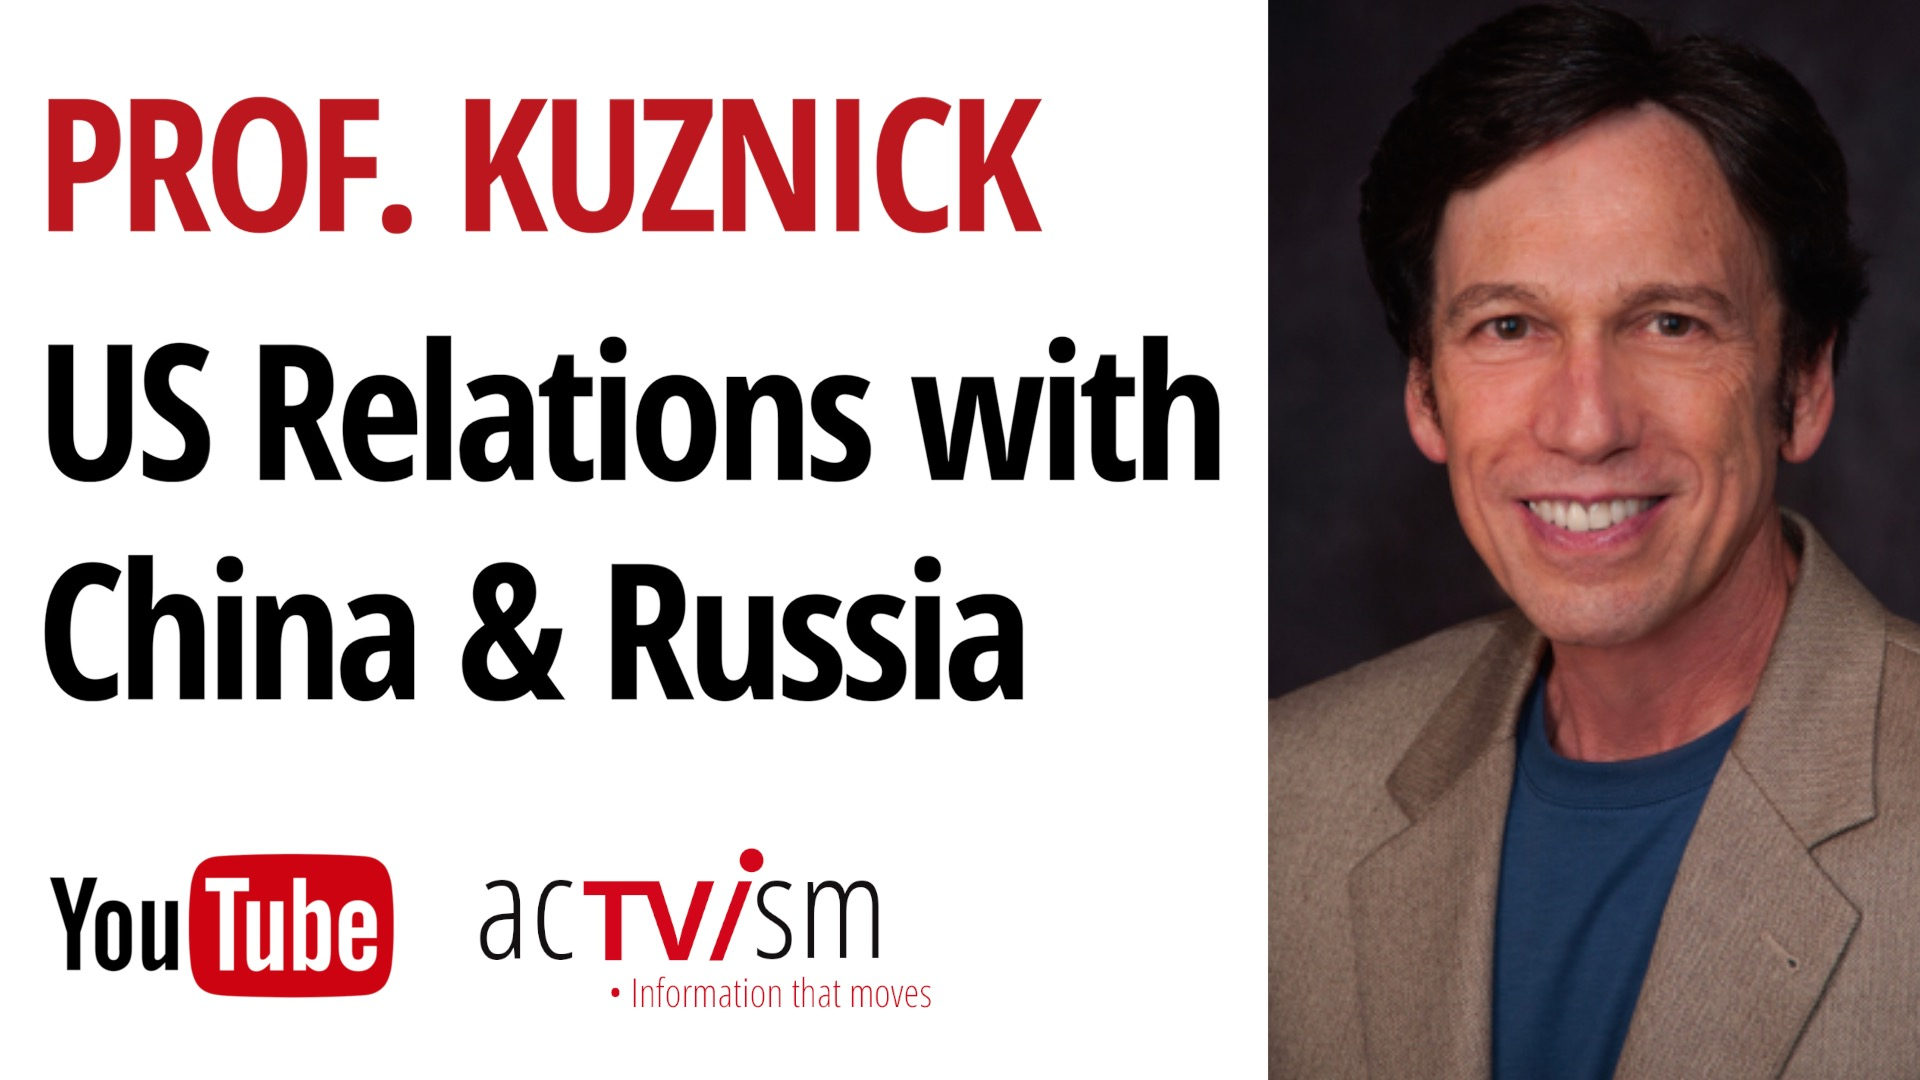 Update: US Relations with China & Russia, the G7 Summit and the Nuclear Ban Treaty | Prof. Kuznick